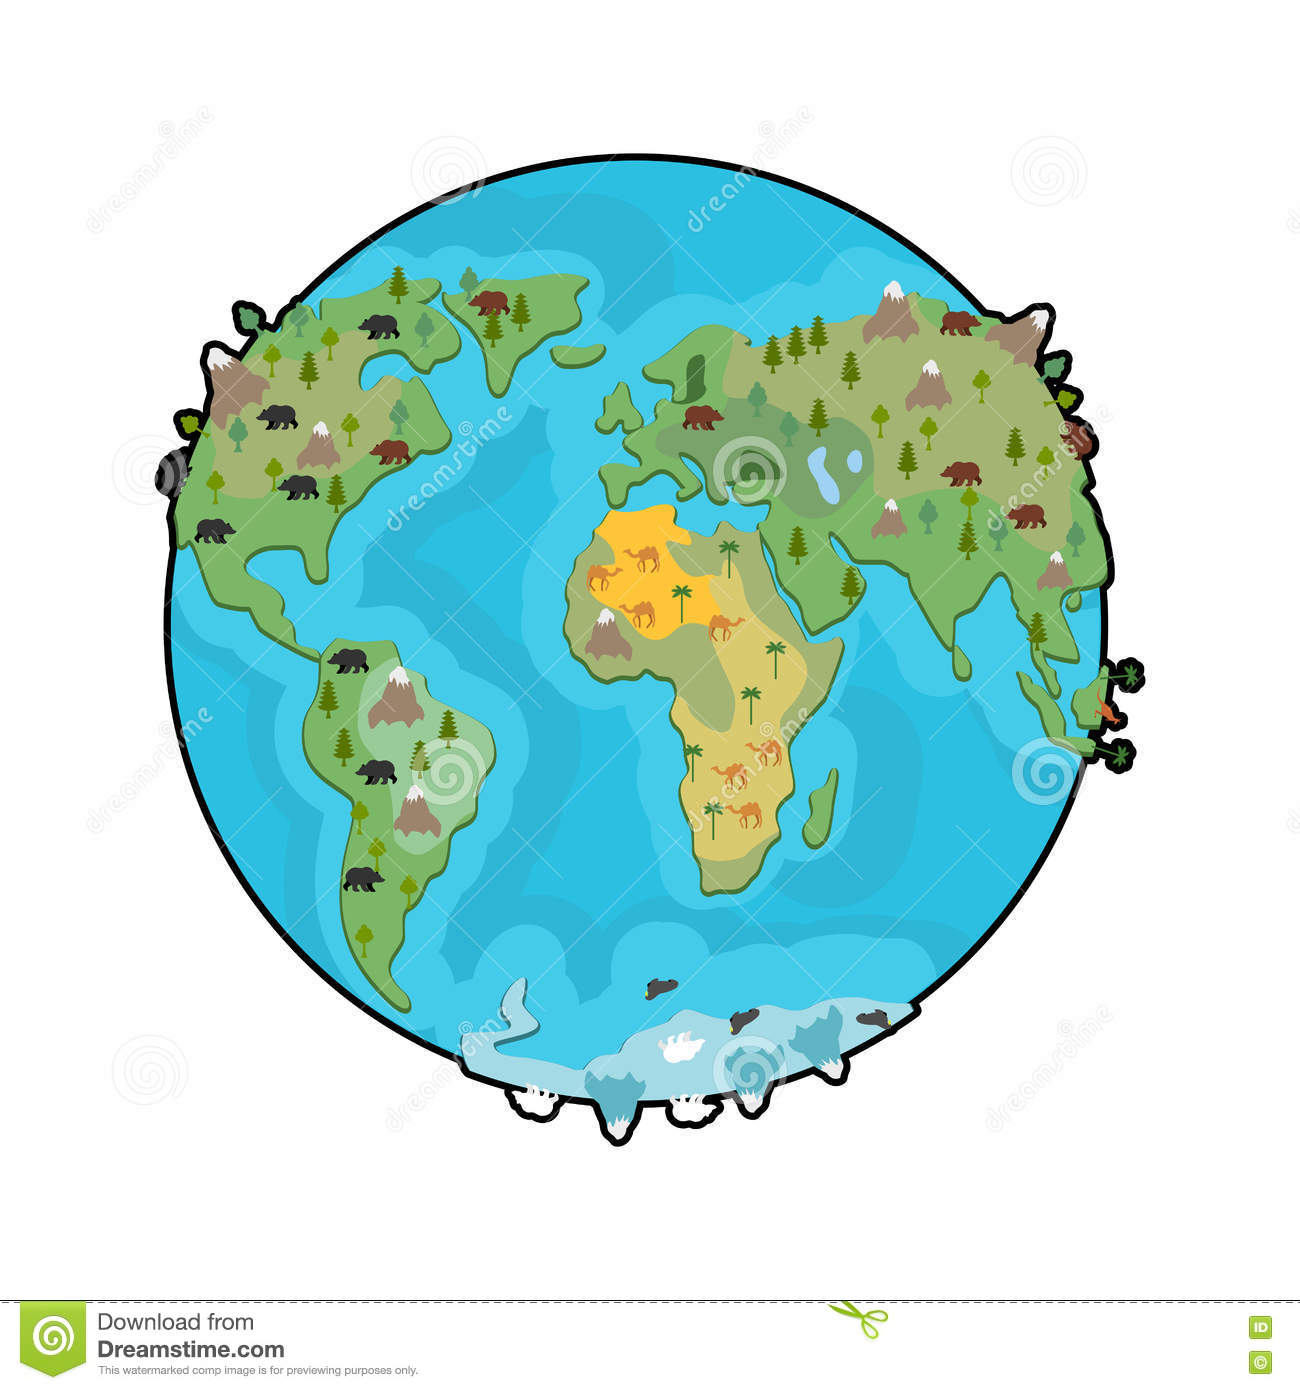 Planet earth and animals beast on continents world map geogra planet earth and animals beast on continents world map geogra animal geography gumiabroncs Images